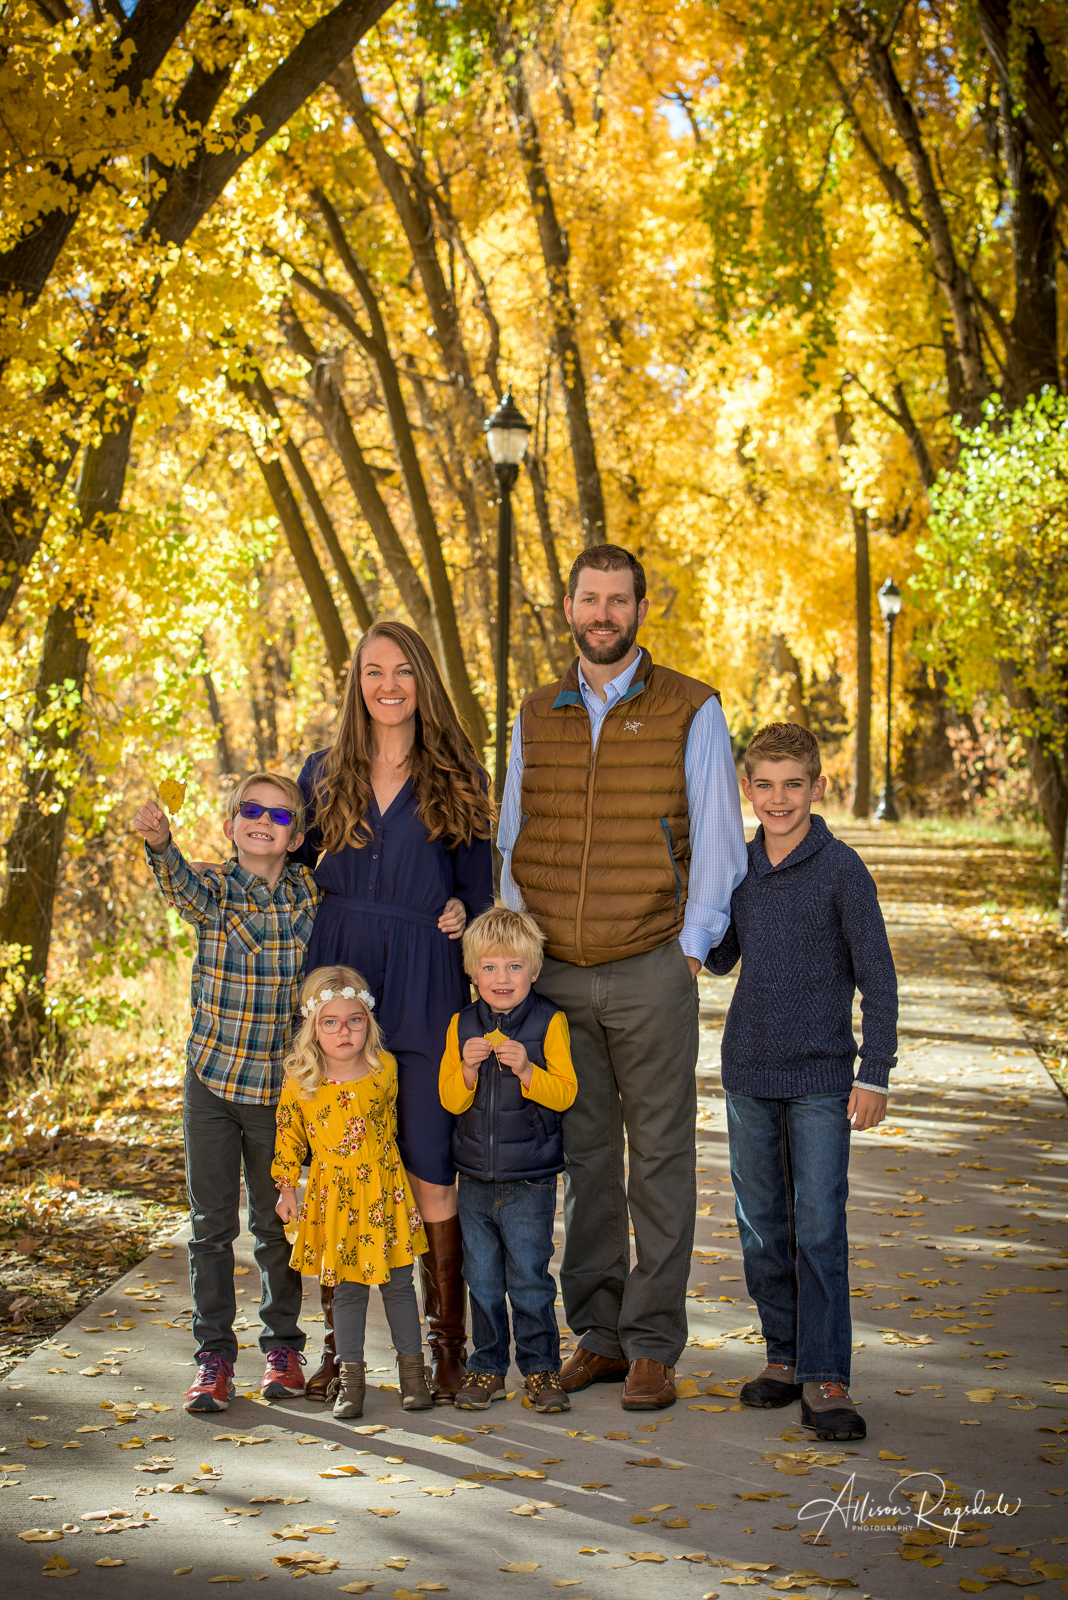 The Cheatham Family's Fall Portraits | Durango Colorado